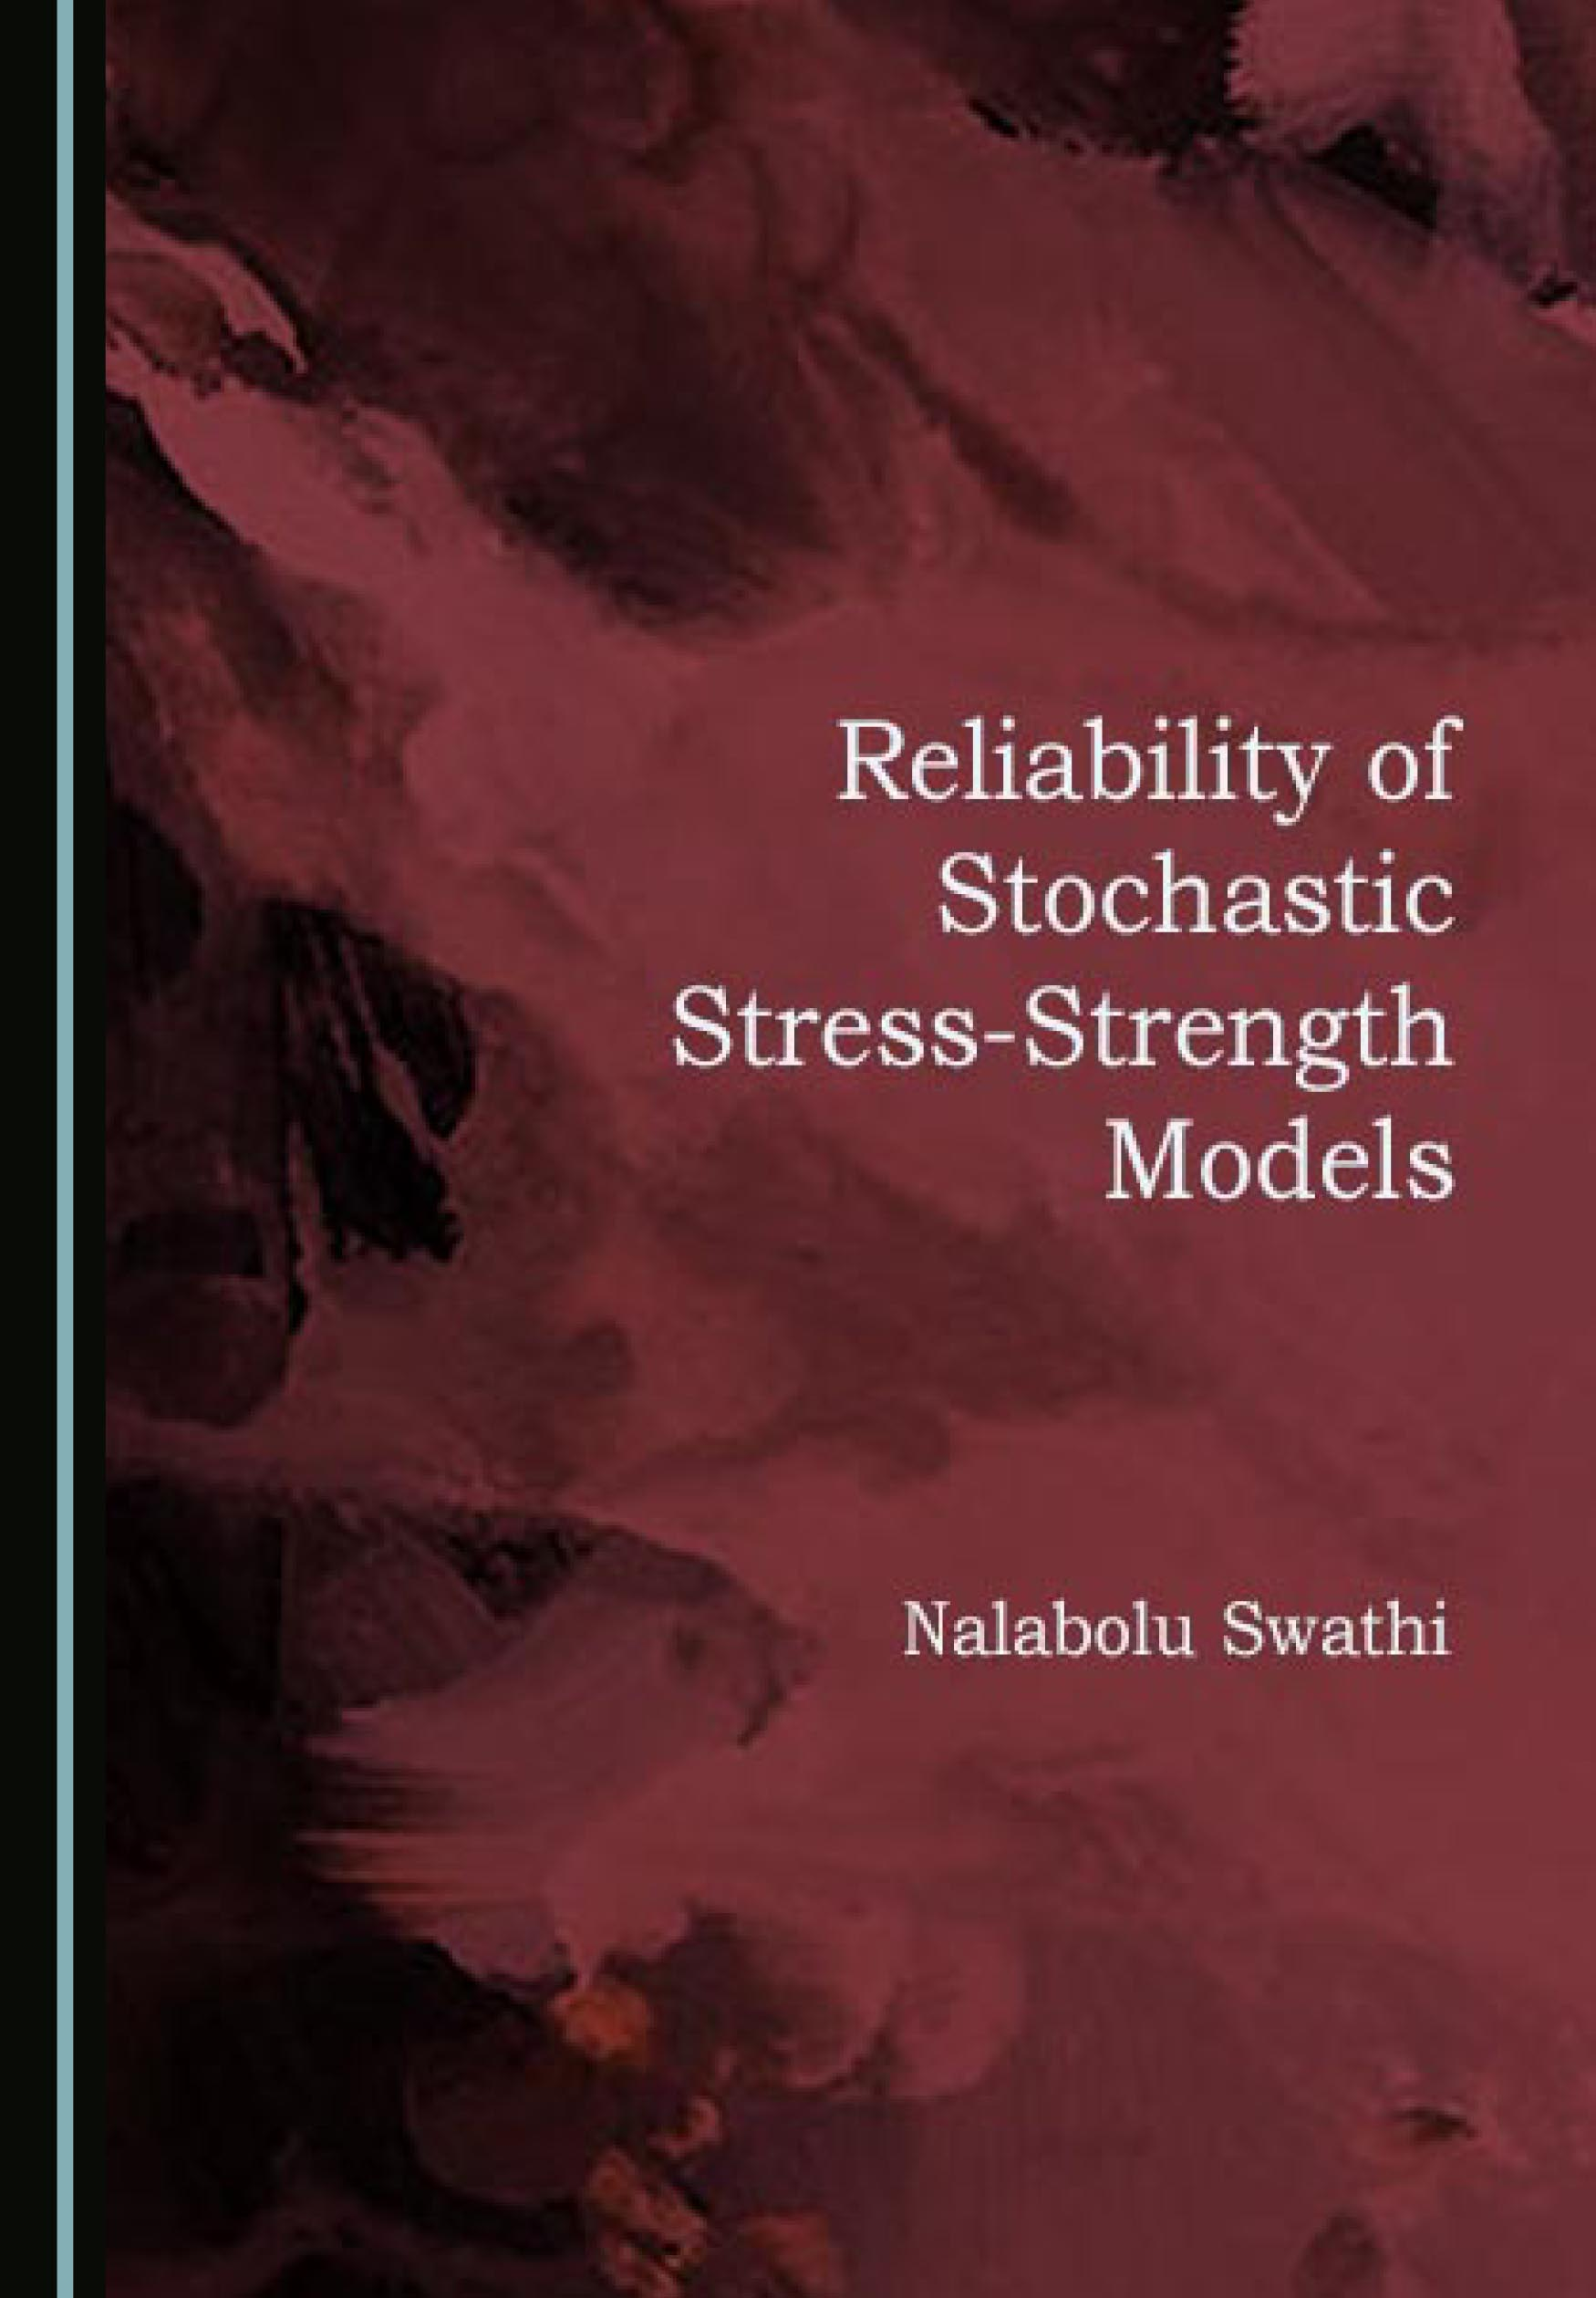 Reliability of Stochastic Stress-Strength Models